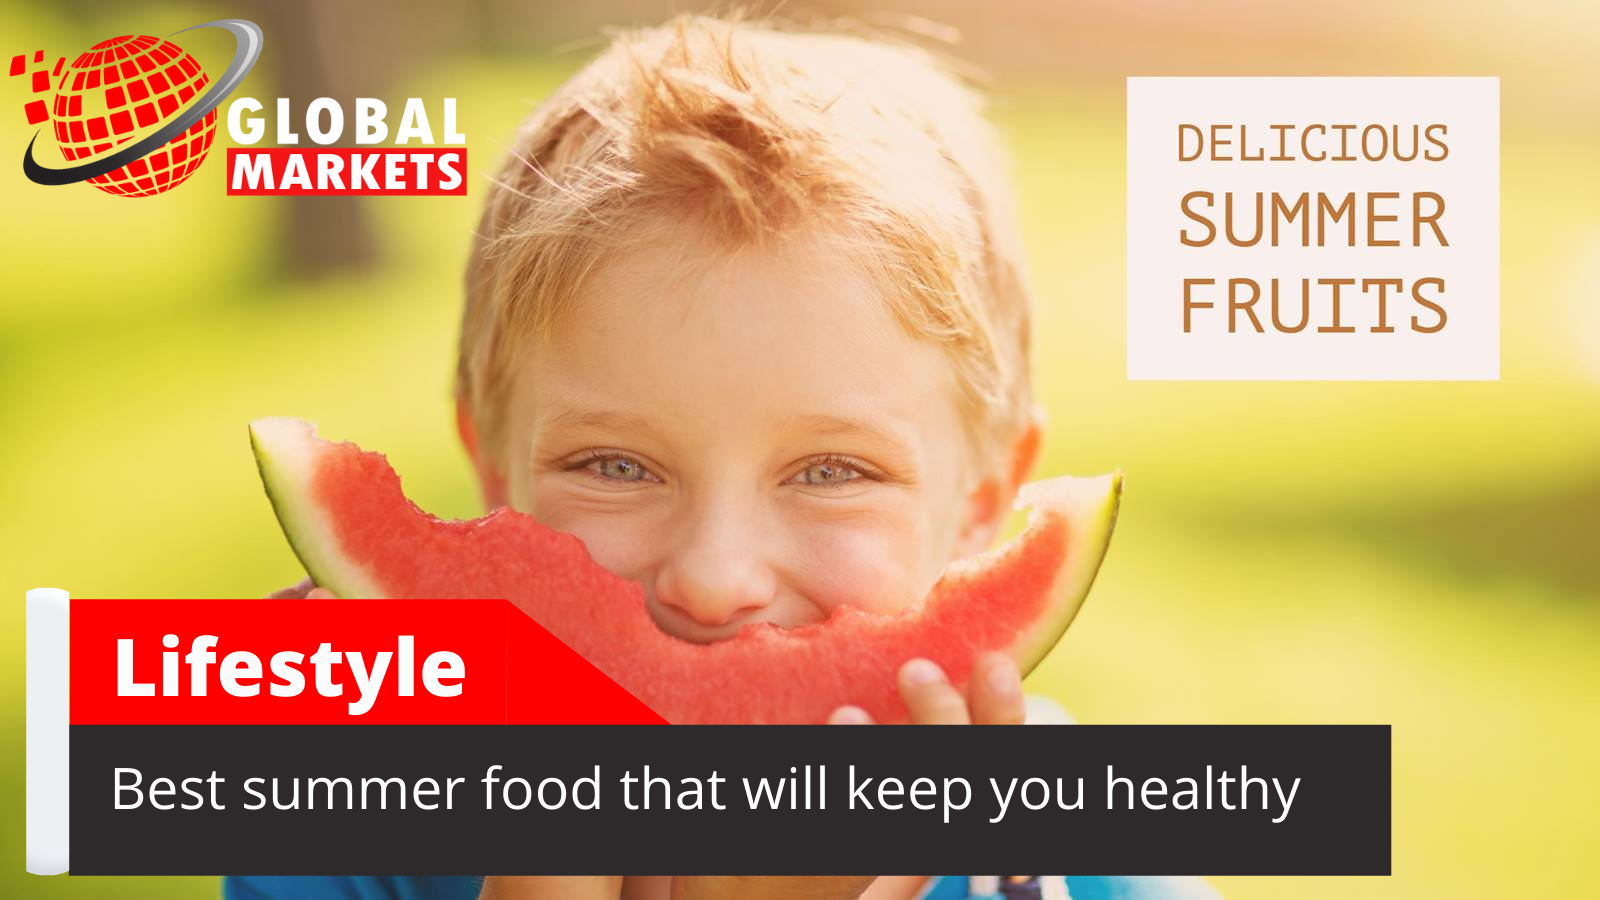 Best summer food that will keep you healthy